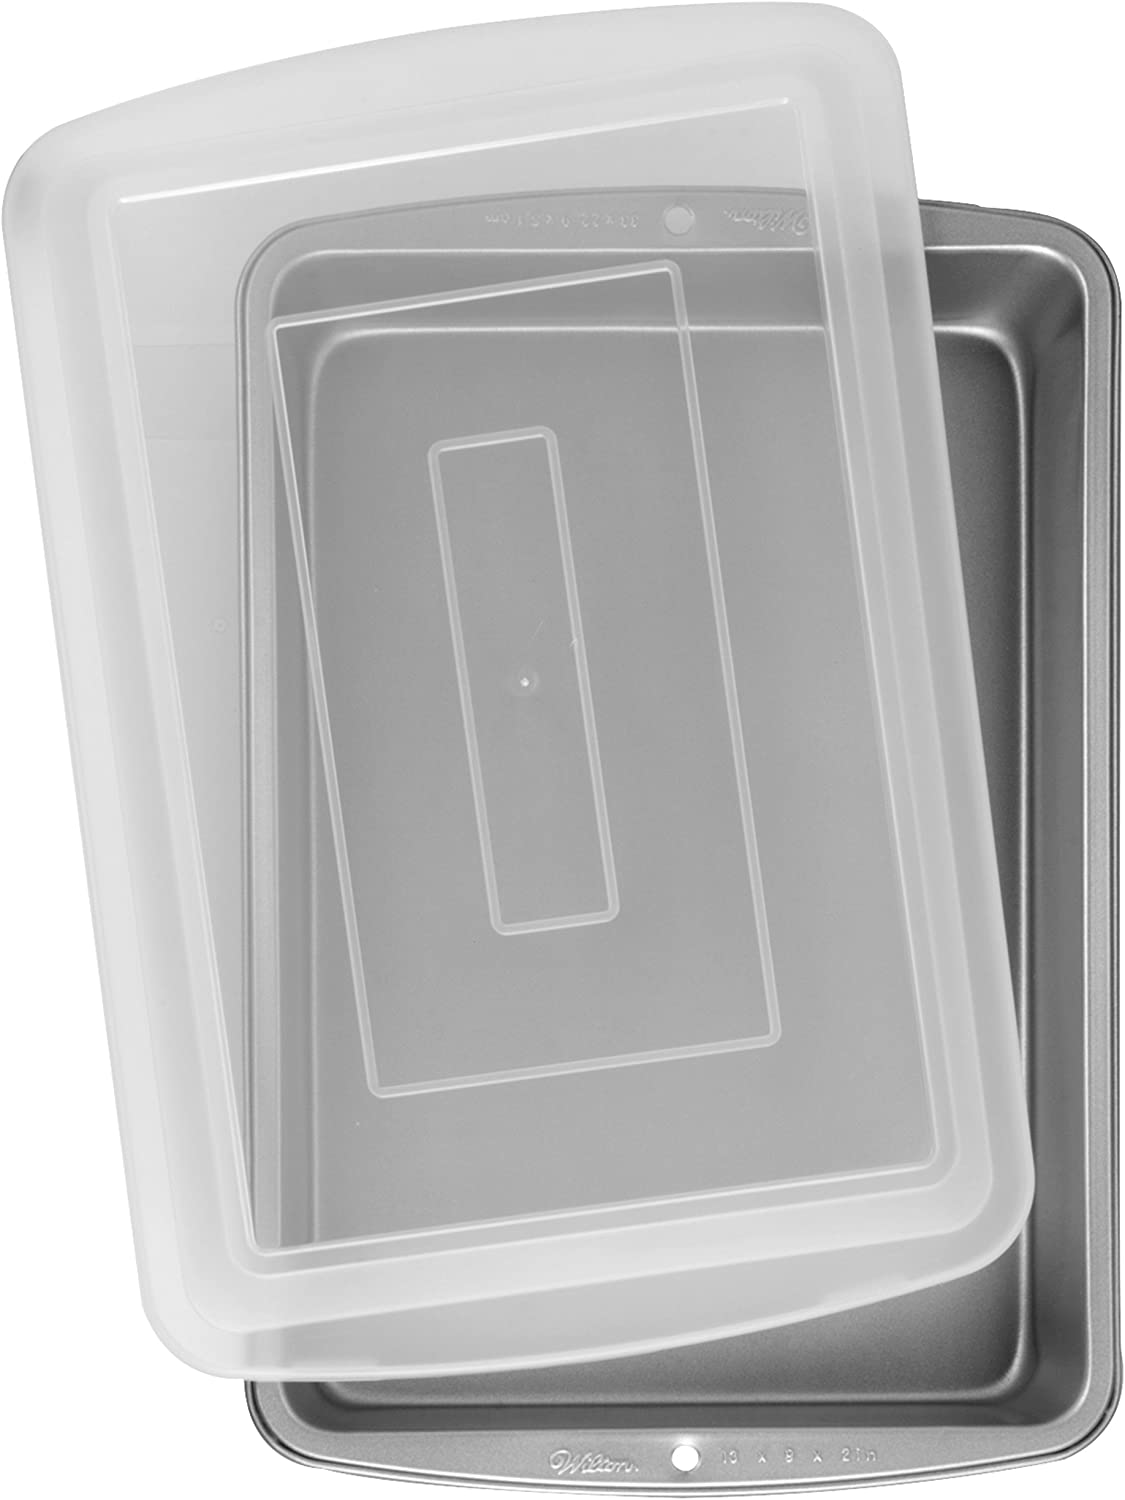 Wilton Recipe Right - Molde rectangular con tapa, 33 x 22.8 x 5 cm